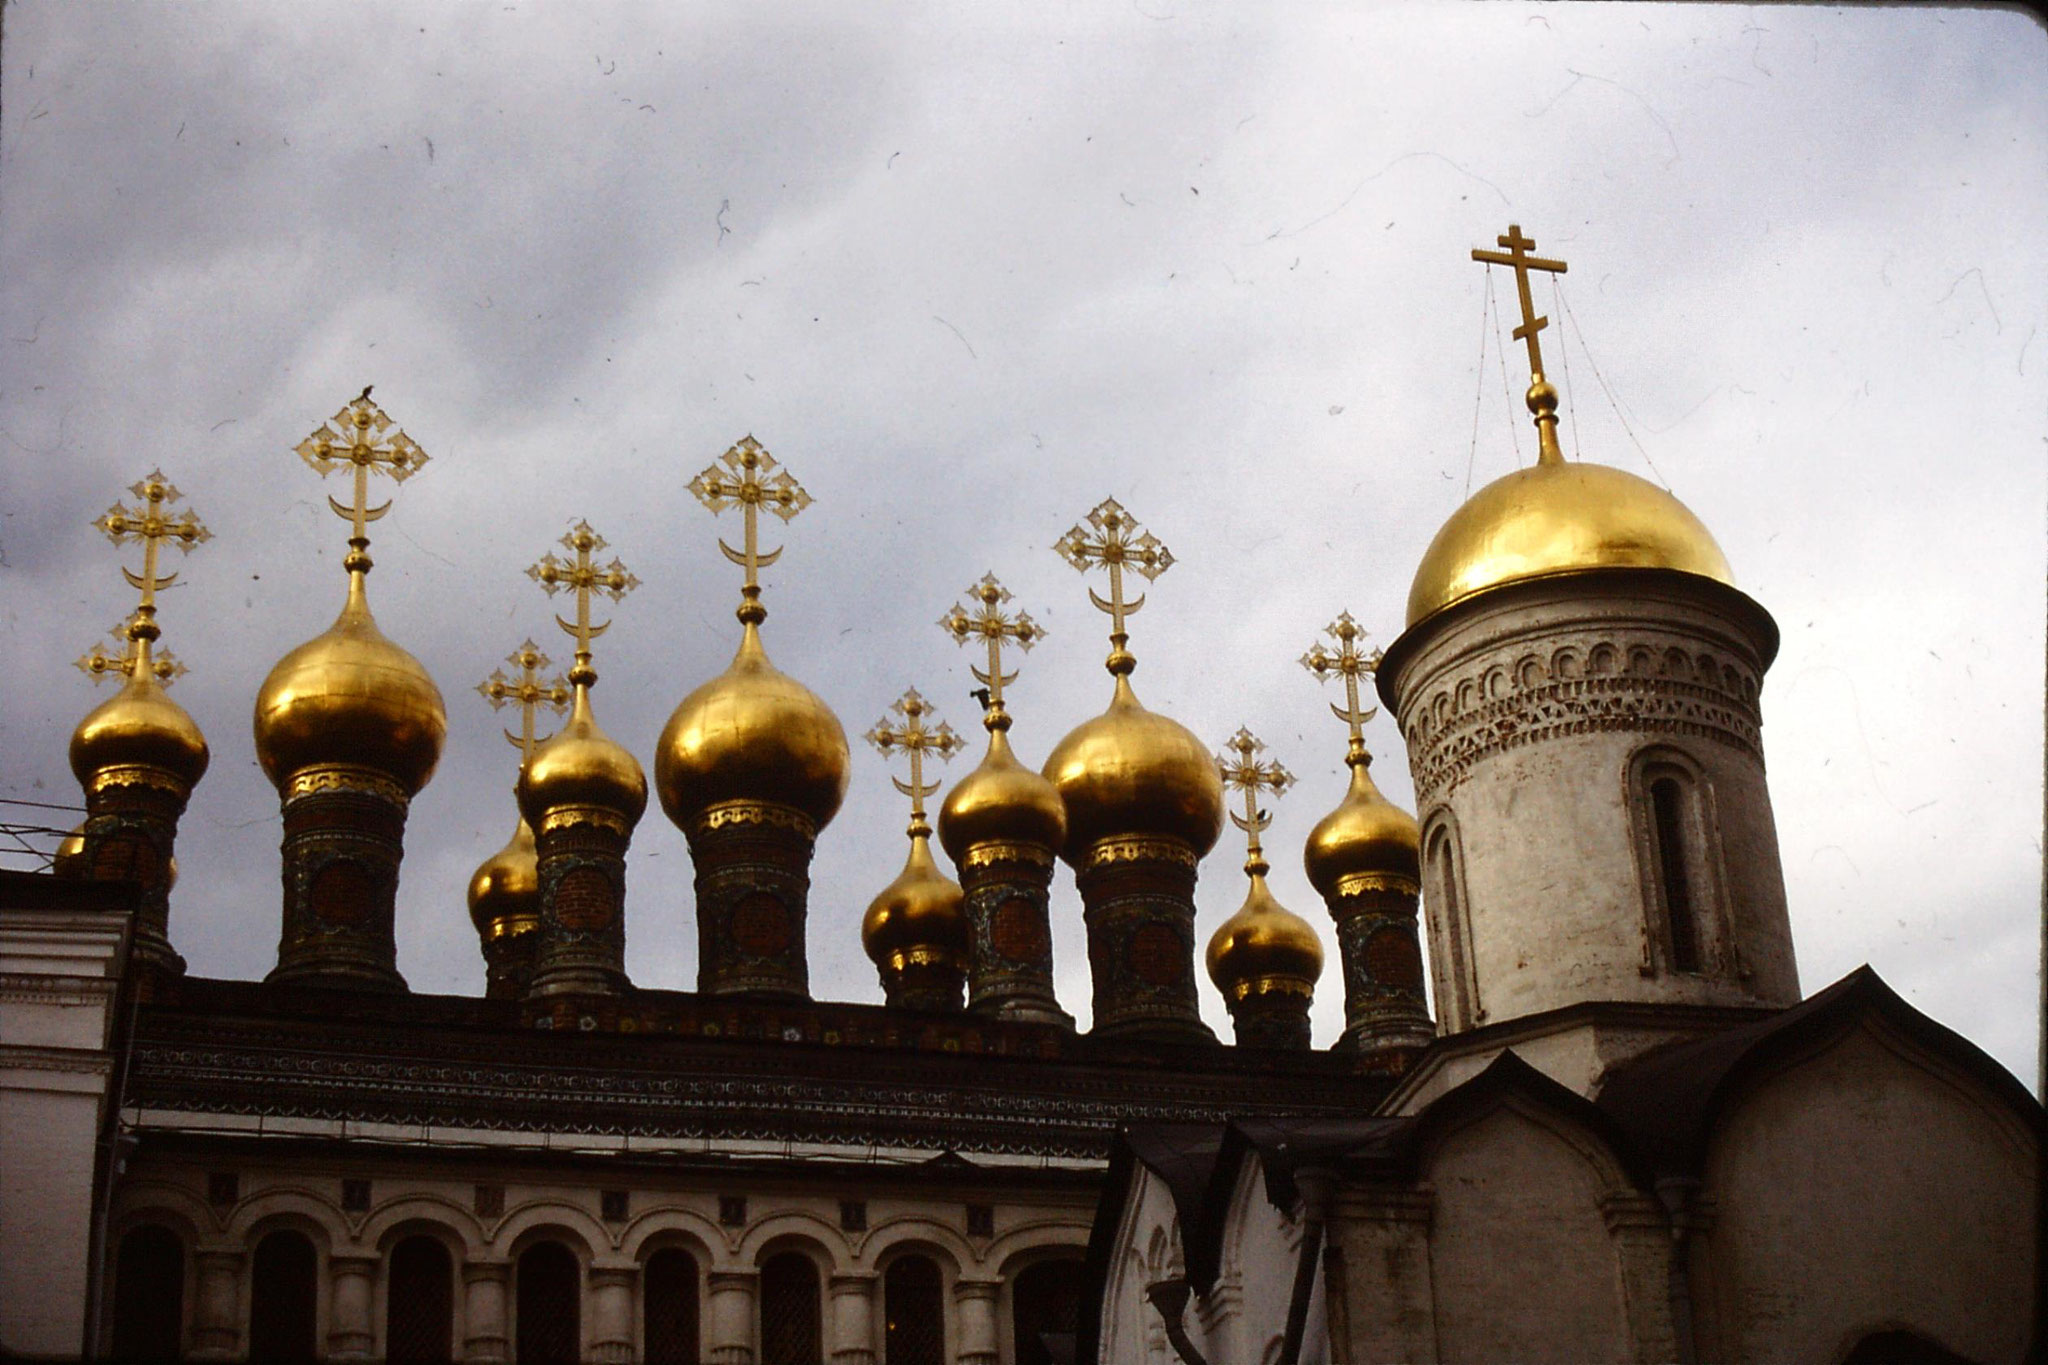 17/10/1988: 4: Kremlin Domes of Verkospasky Cathedral